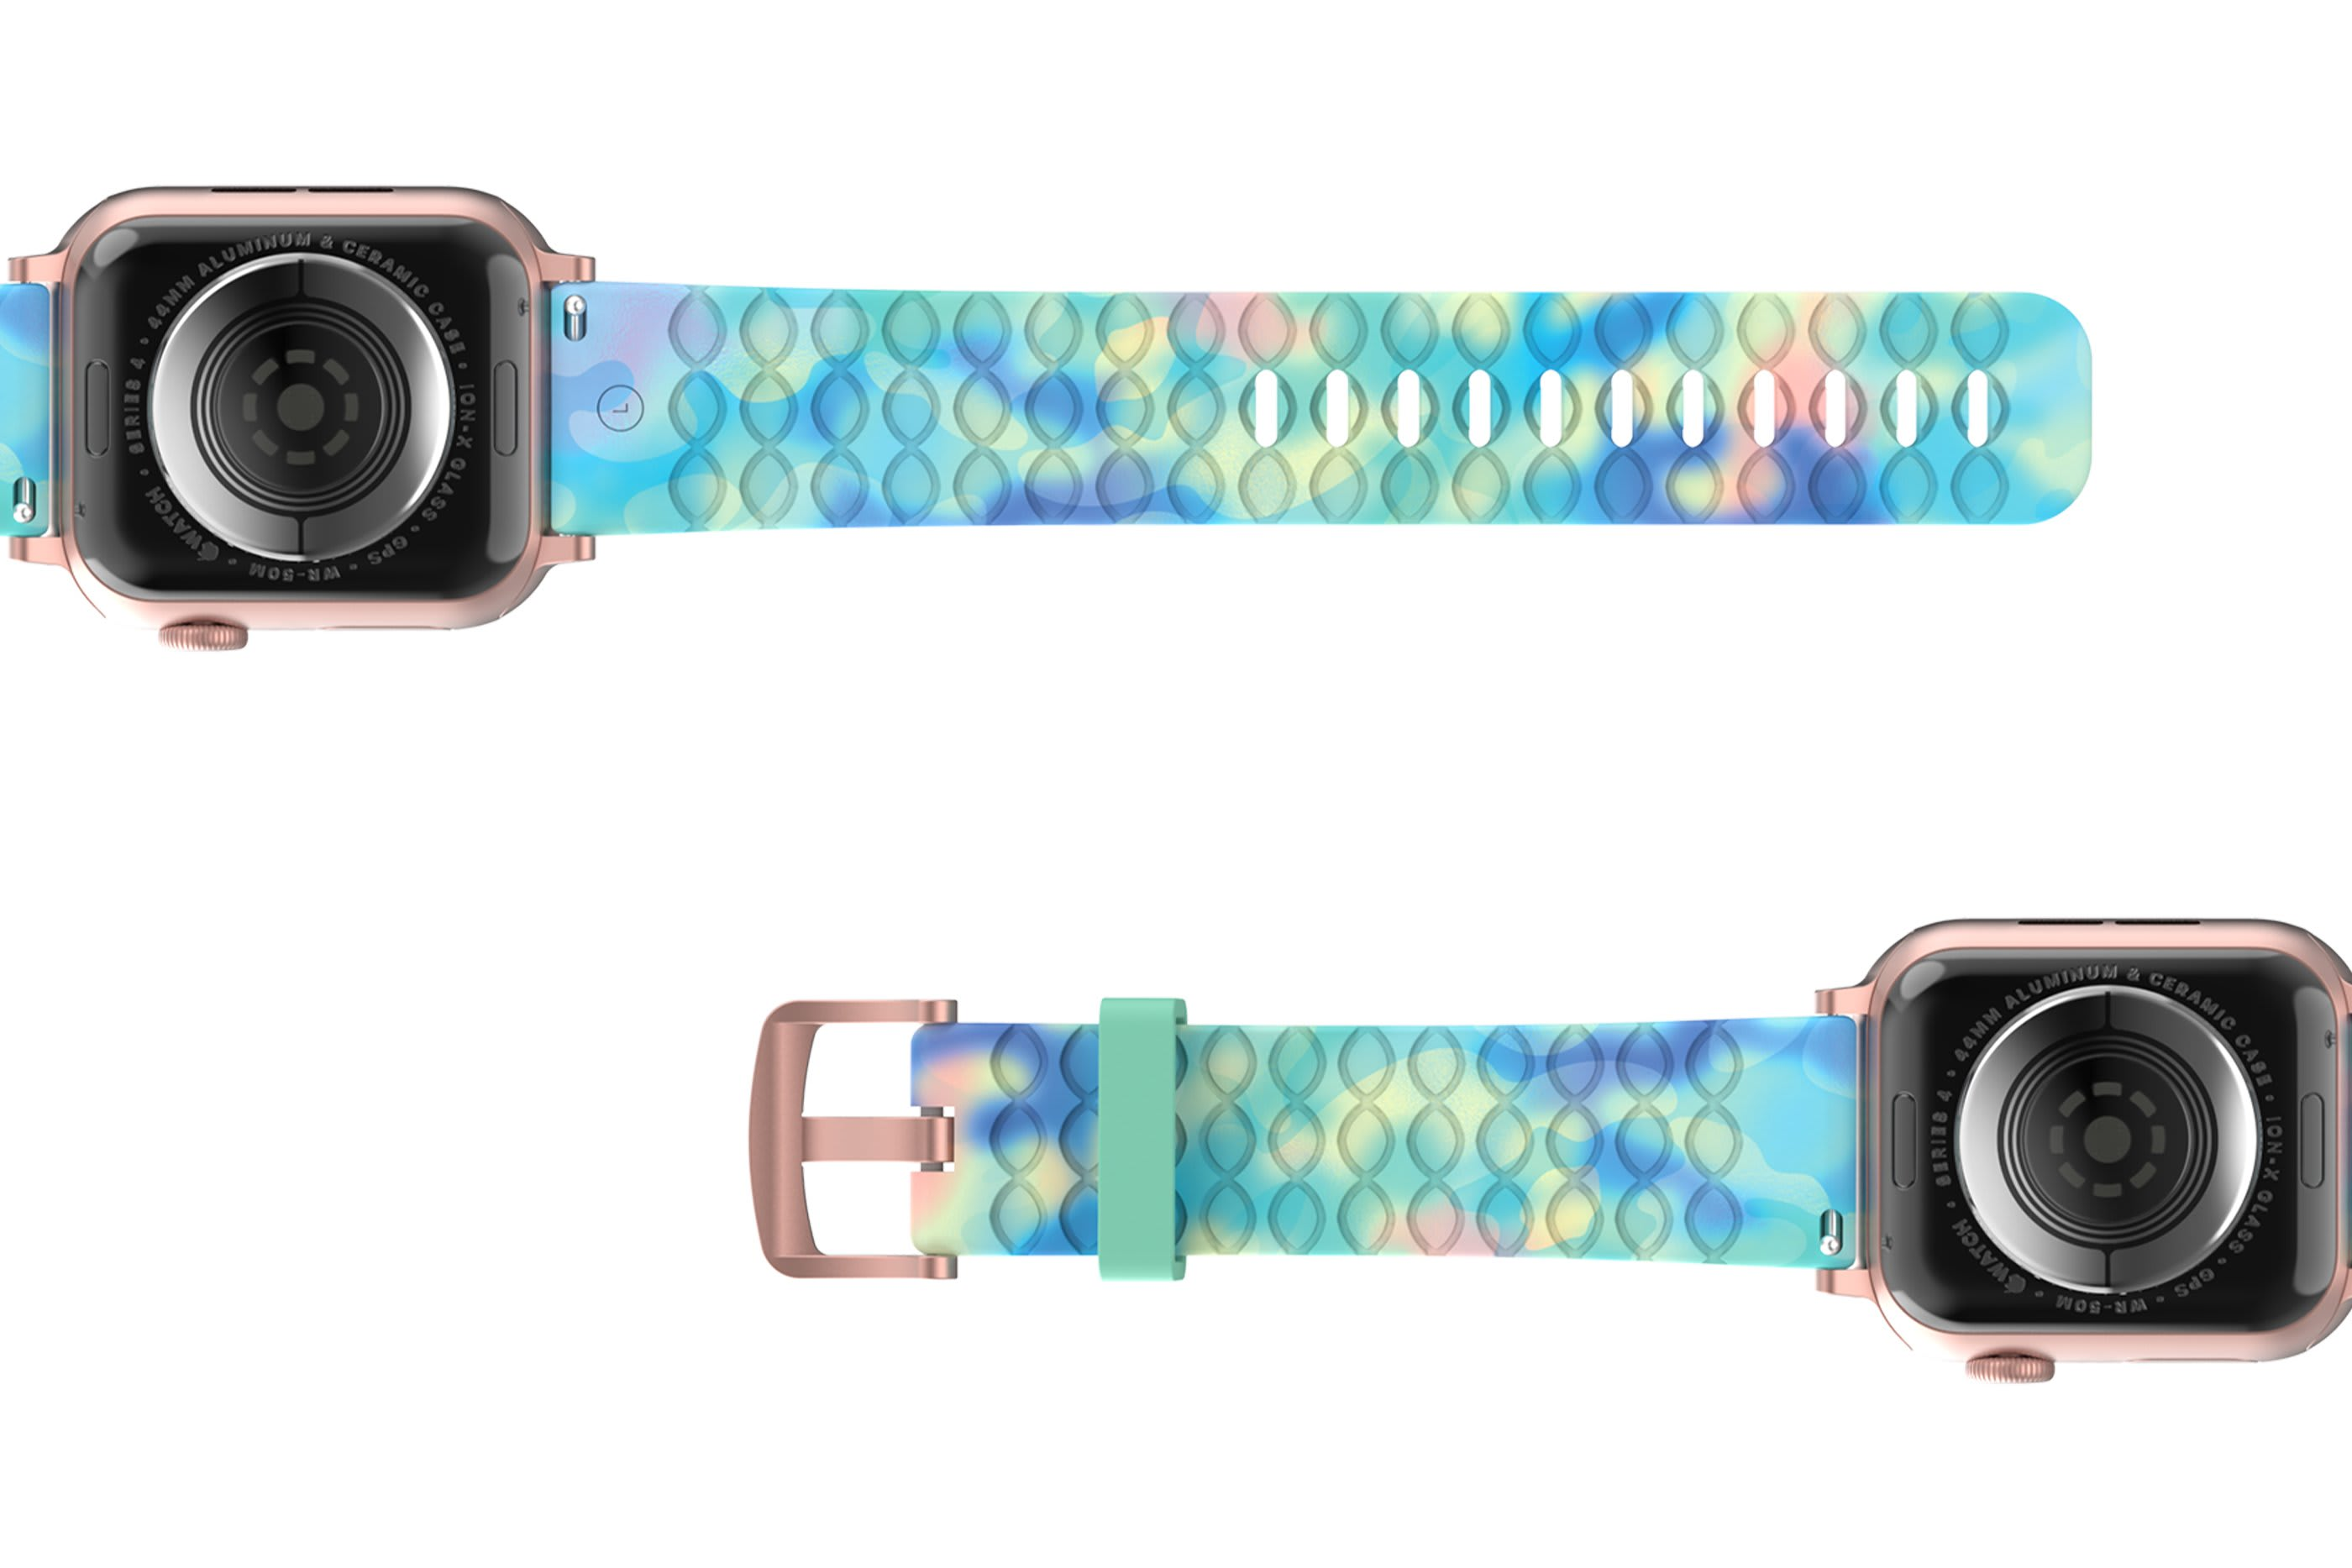 Opal - Apple   watch band with rose gold hardware viewed bottom up